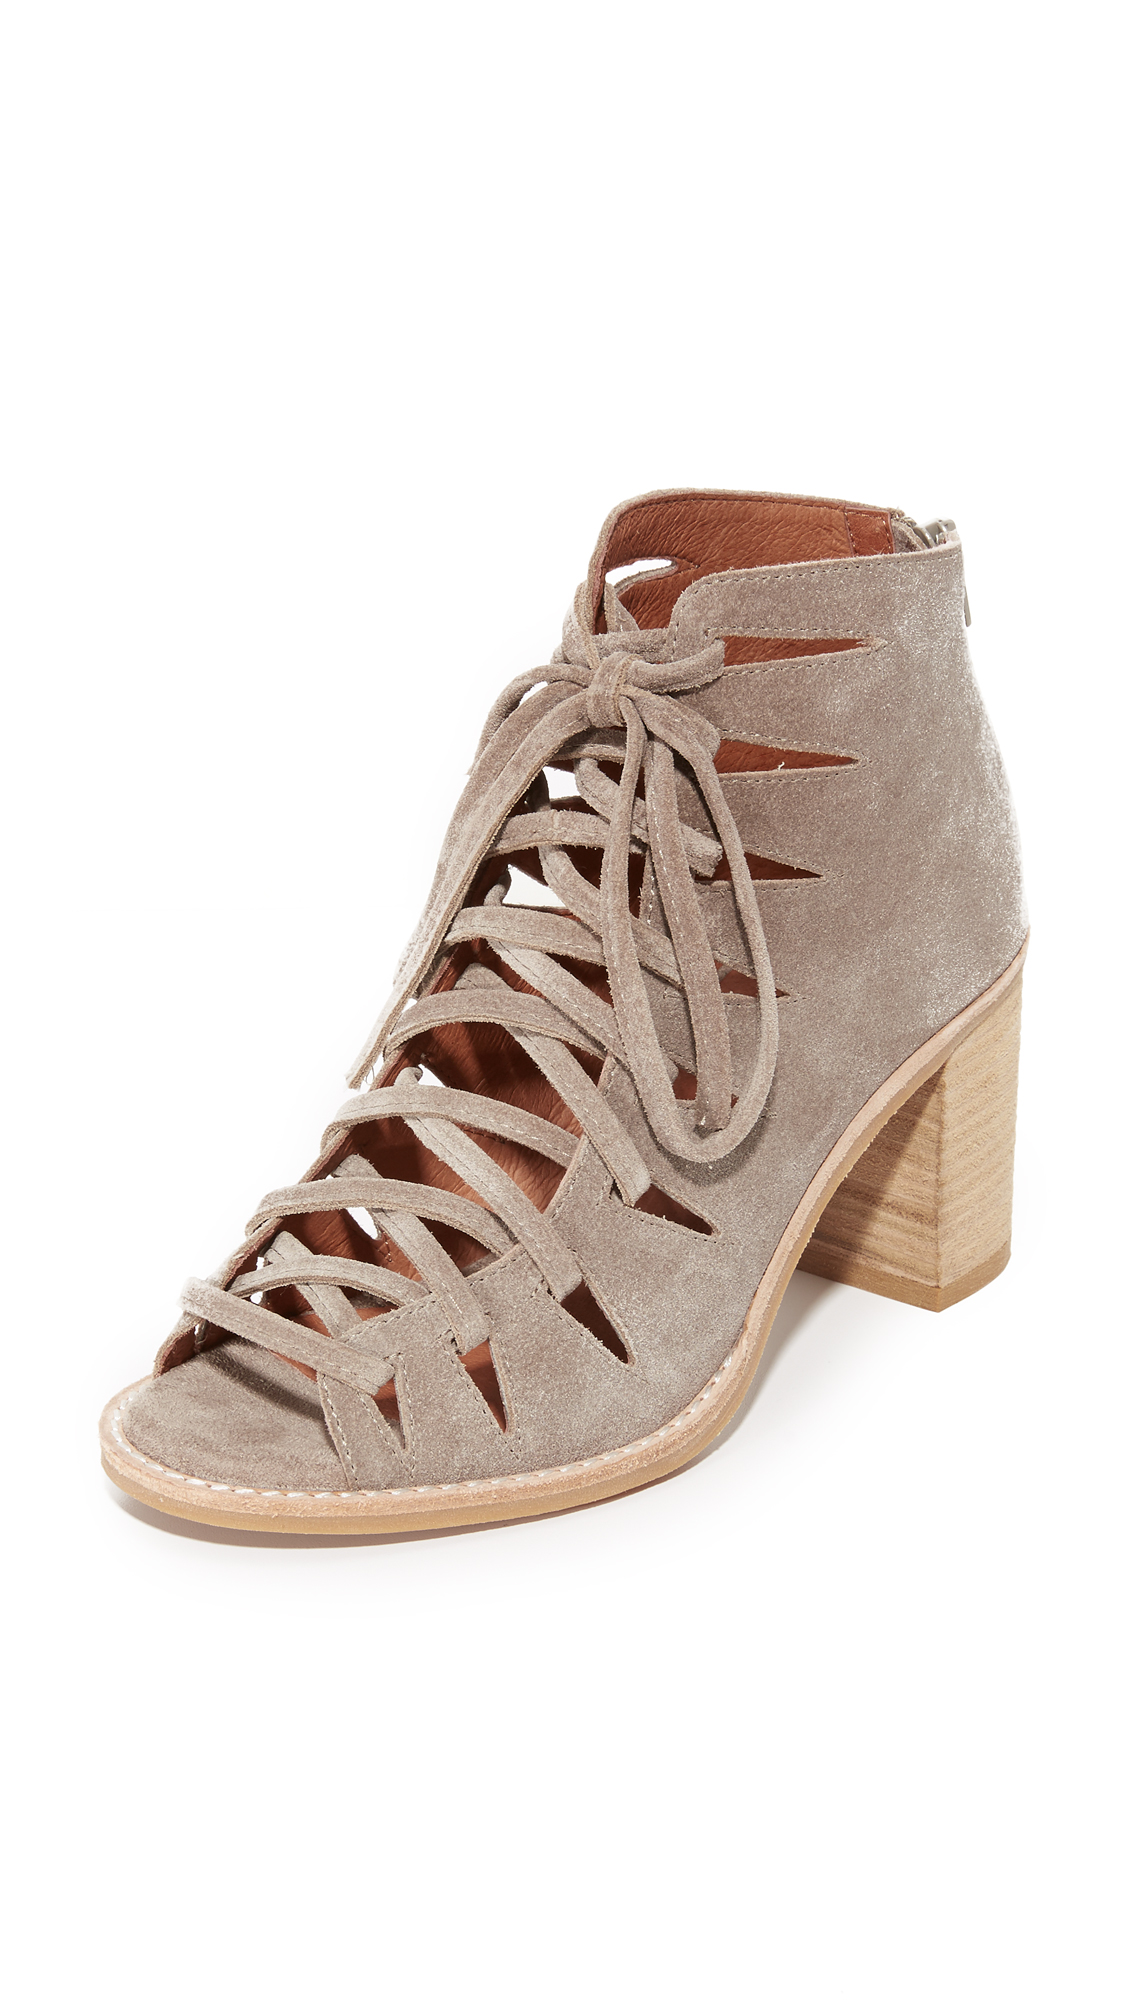 Jeffrey Campbell Corwin Lace Up Booties - Taupe